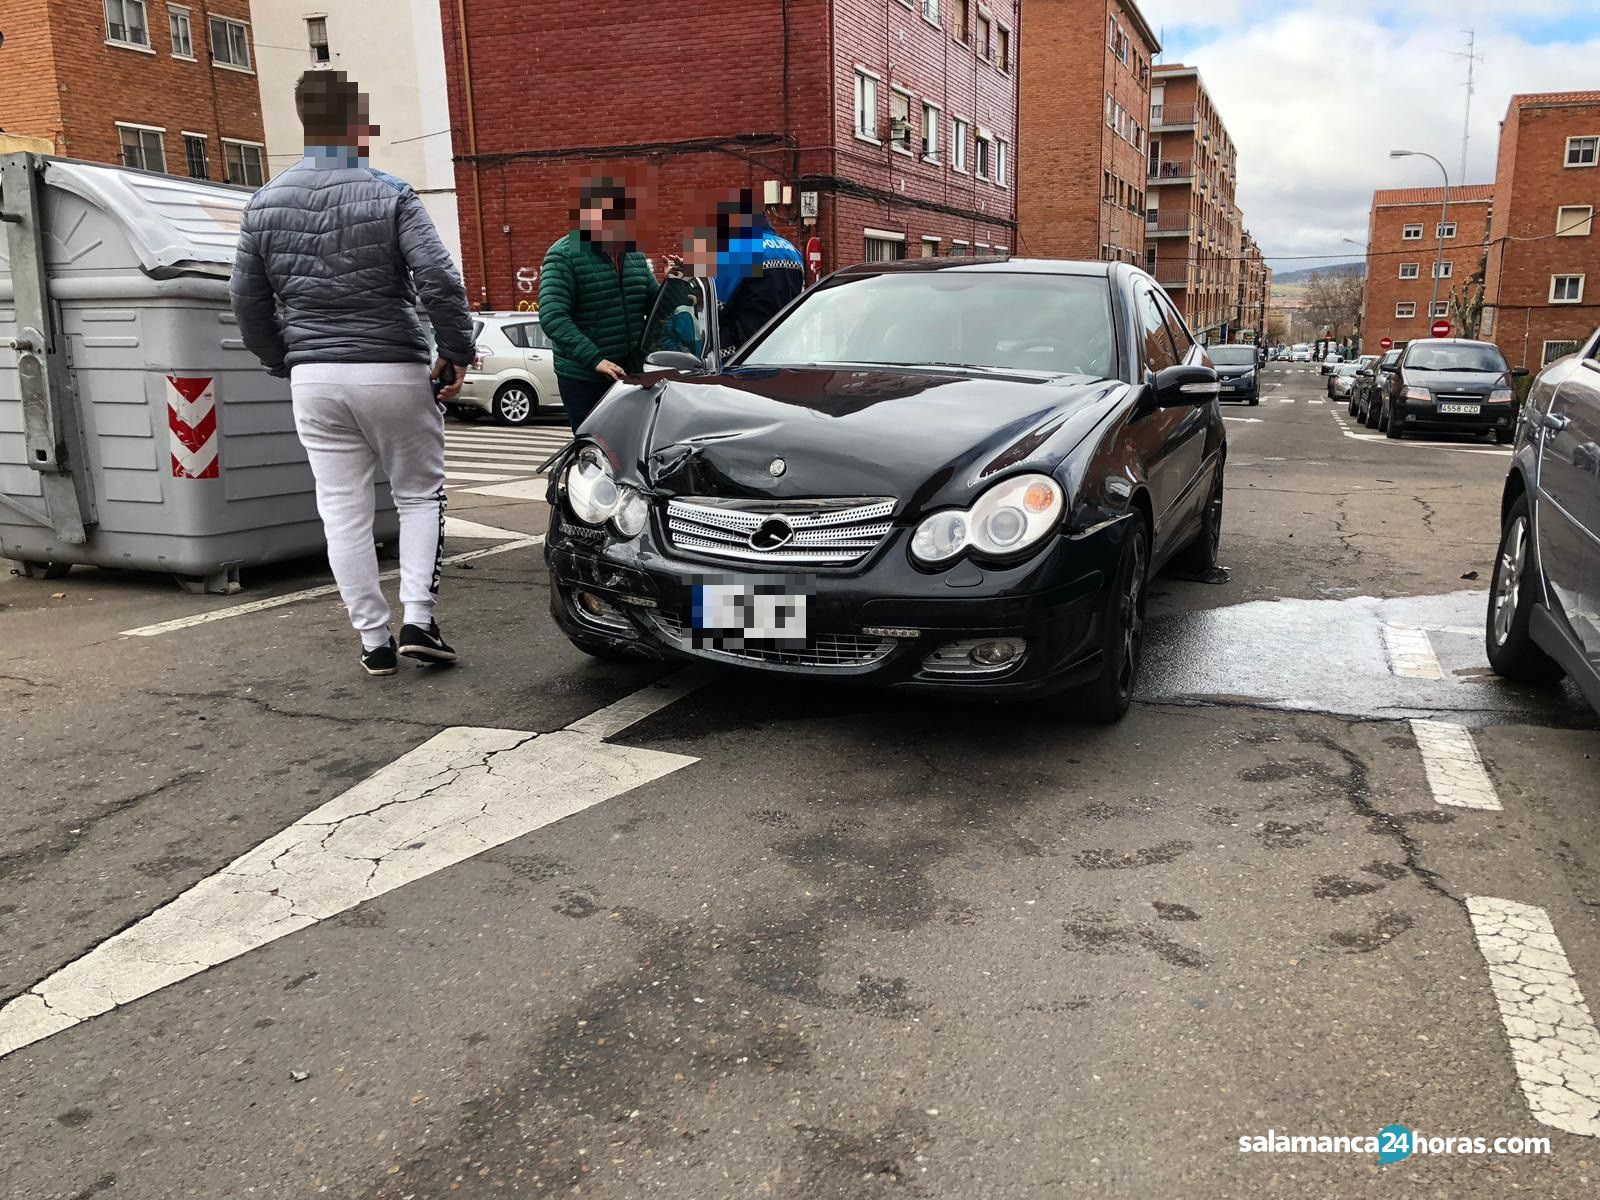 Accidente en la calle La Alberca